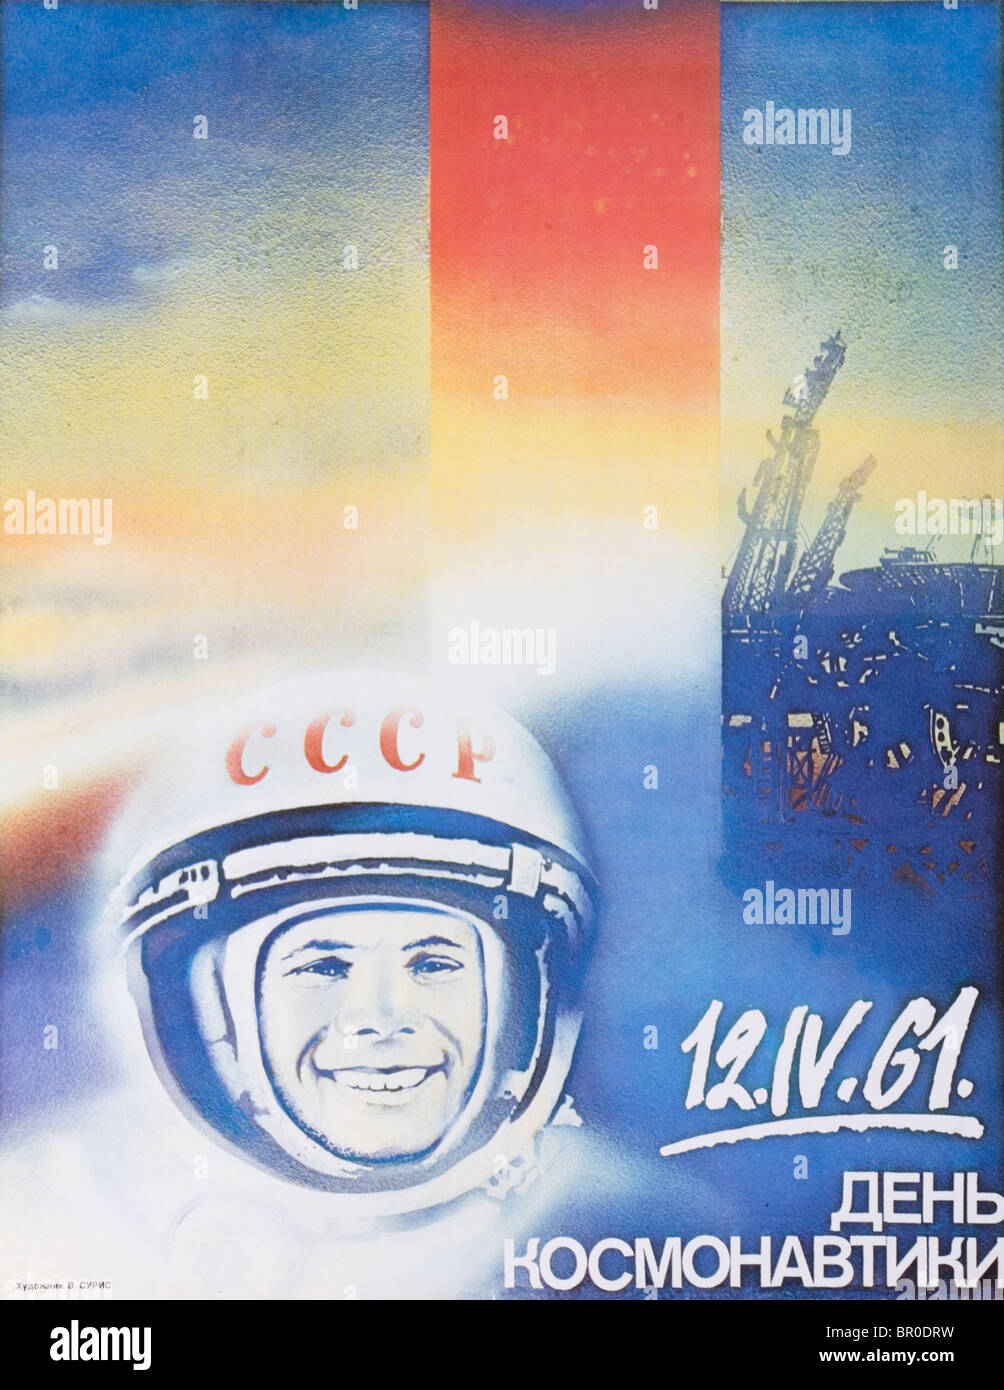 Soviet poster celebrating the first manned space flight,by Yuri Gagarin on 12th April 1961. - Stock Image